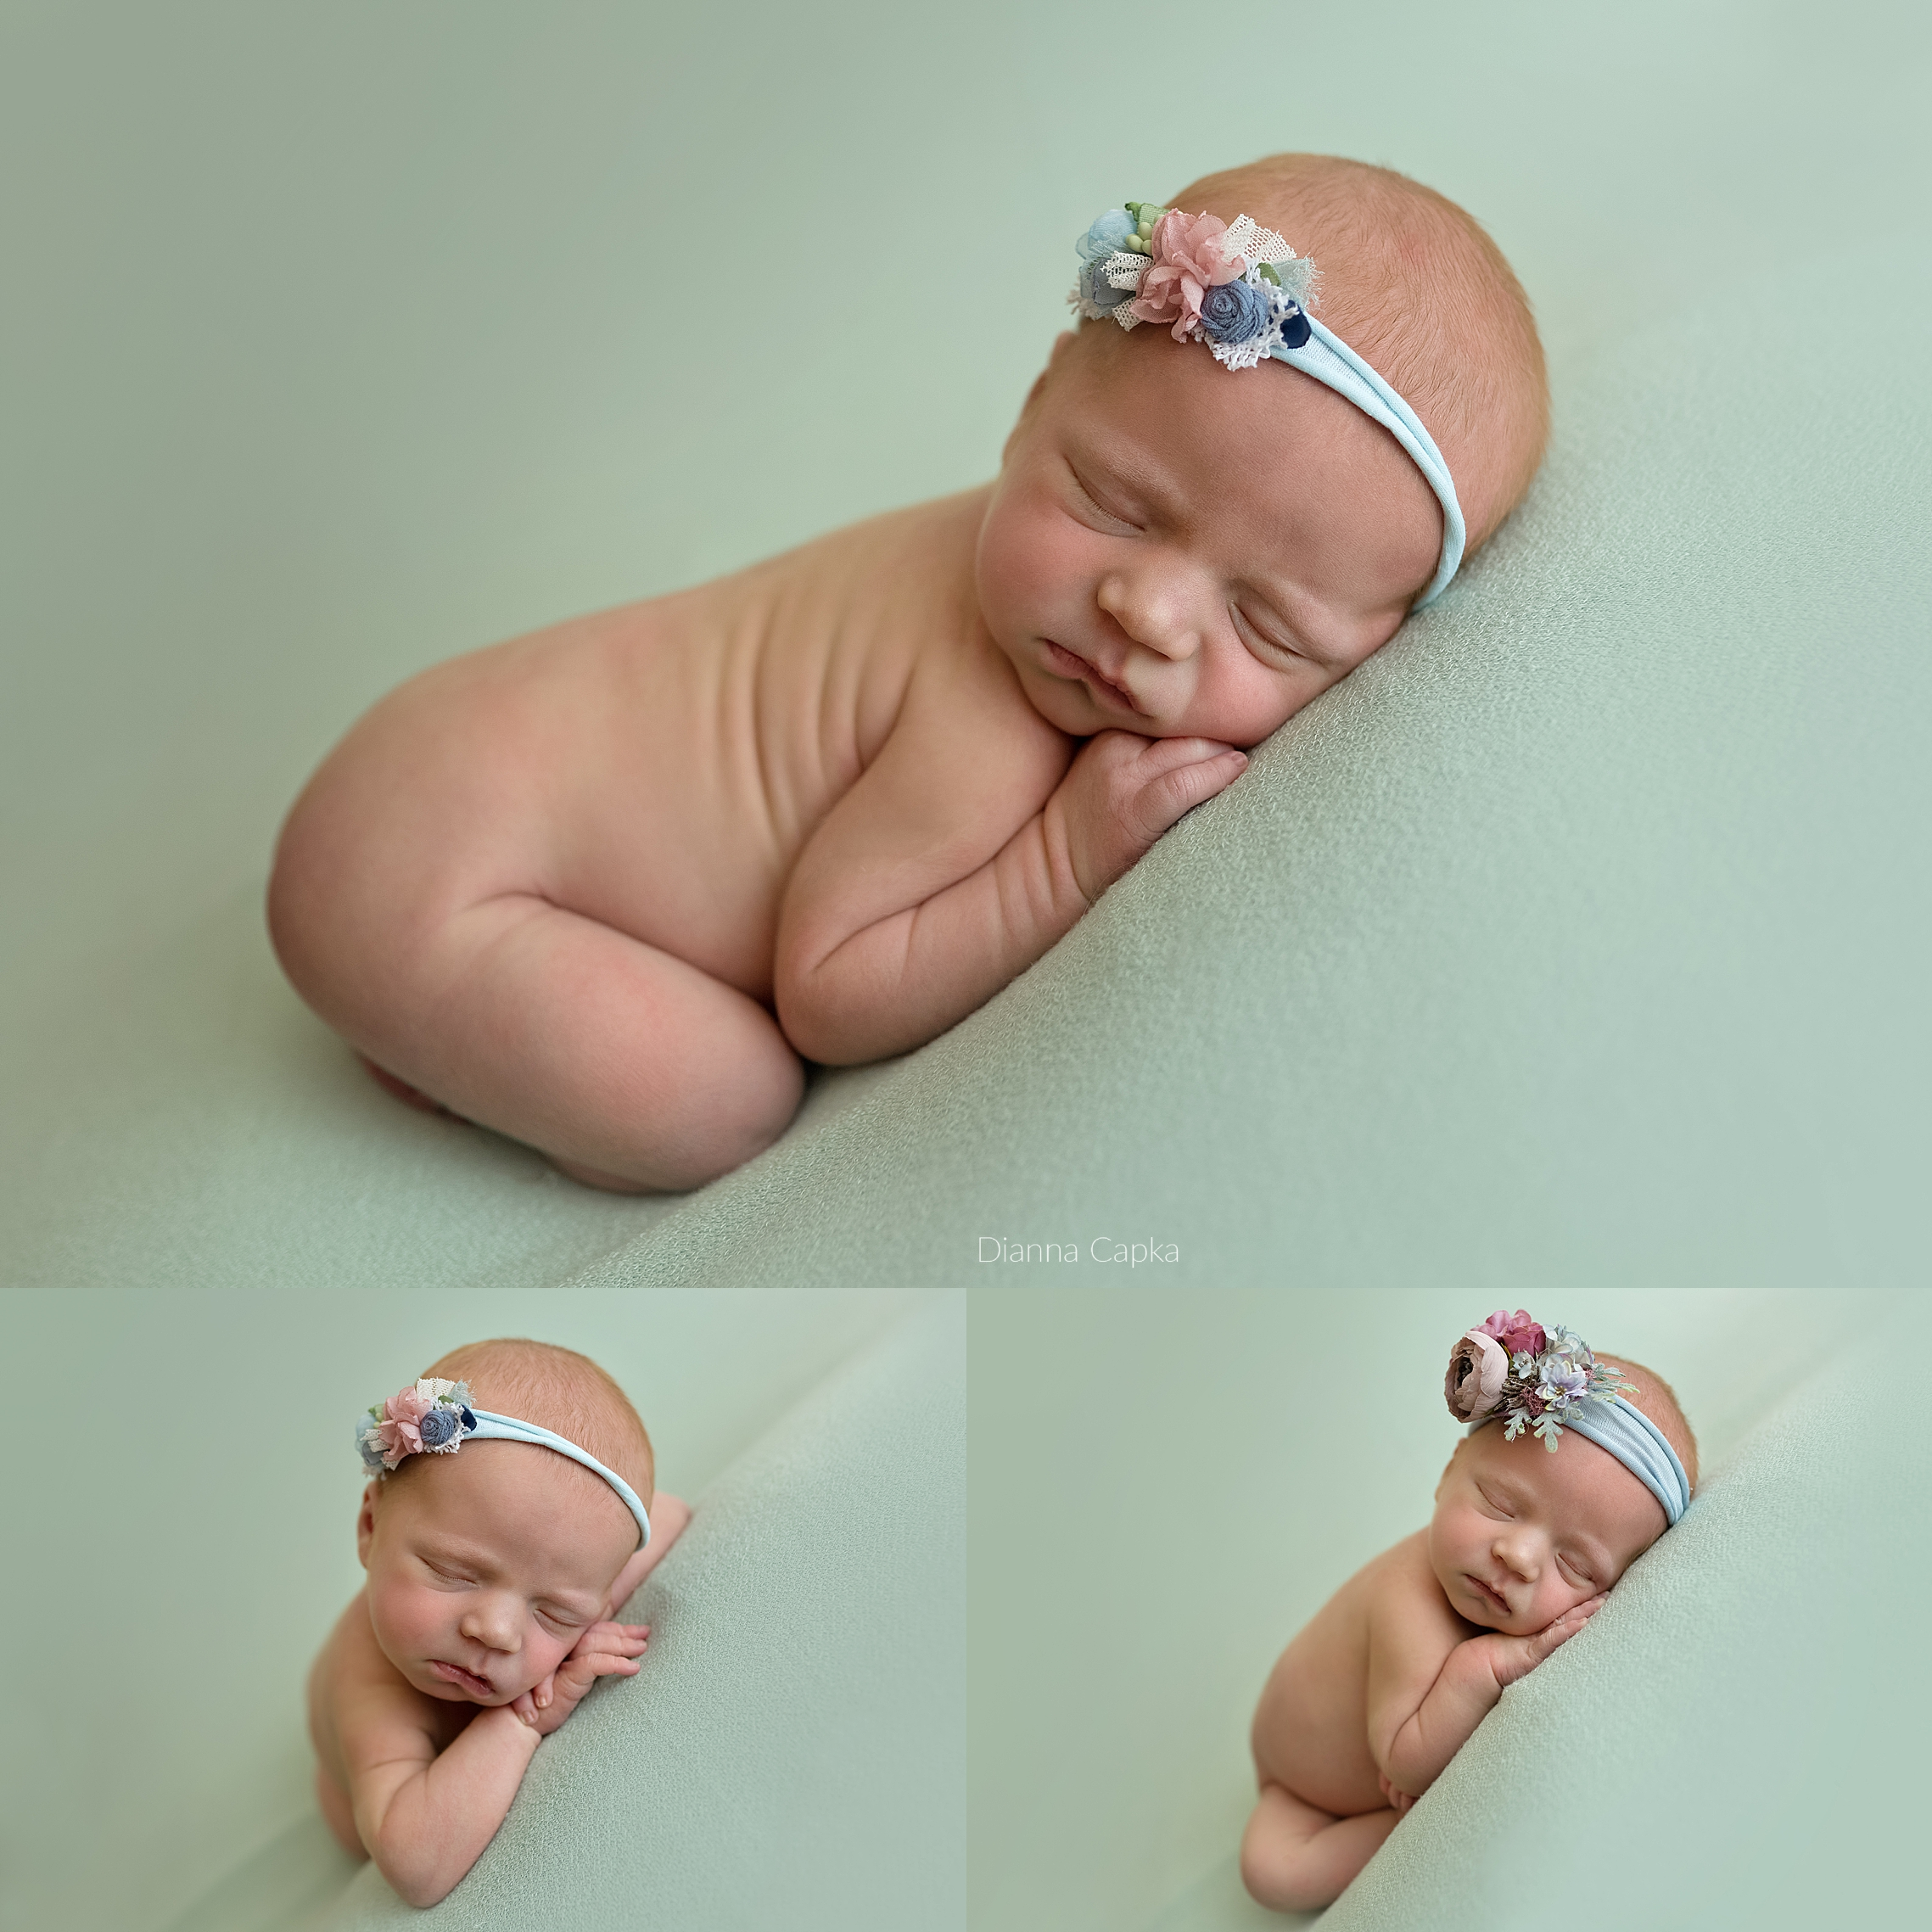 Newborn Photographer Lancaster county PA Central PA Berks, York, Lebanon, Reading